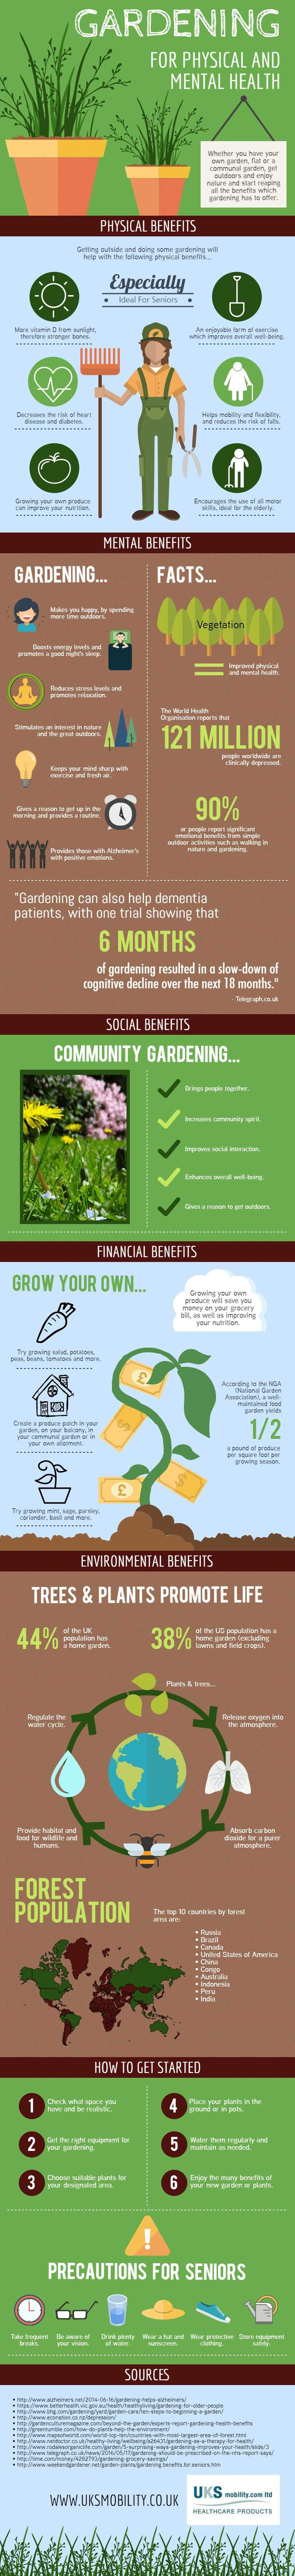 Did you know that gardening can reduce stress levels and boost your energy levels? Well, there's that and many more interesting facts outlined in the below infographic. Created by UKS Mobility, the infographic showcases all the vital benefits, how you can go about getting started with your own gardening, as well as some precautions to remember for seniors. More info at http://homeandgardenamerica.com/gardening-for-your-physical-and-mental-health